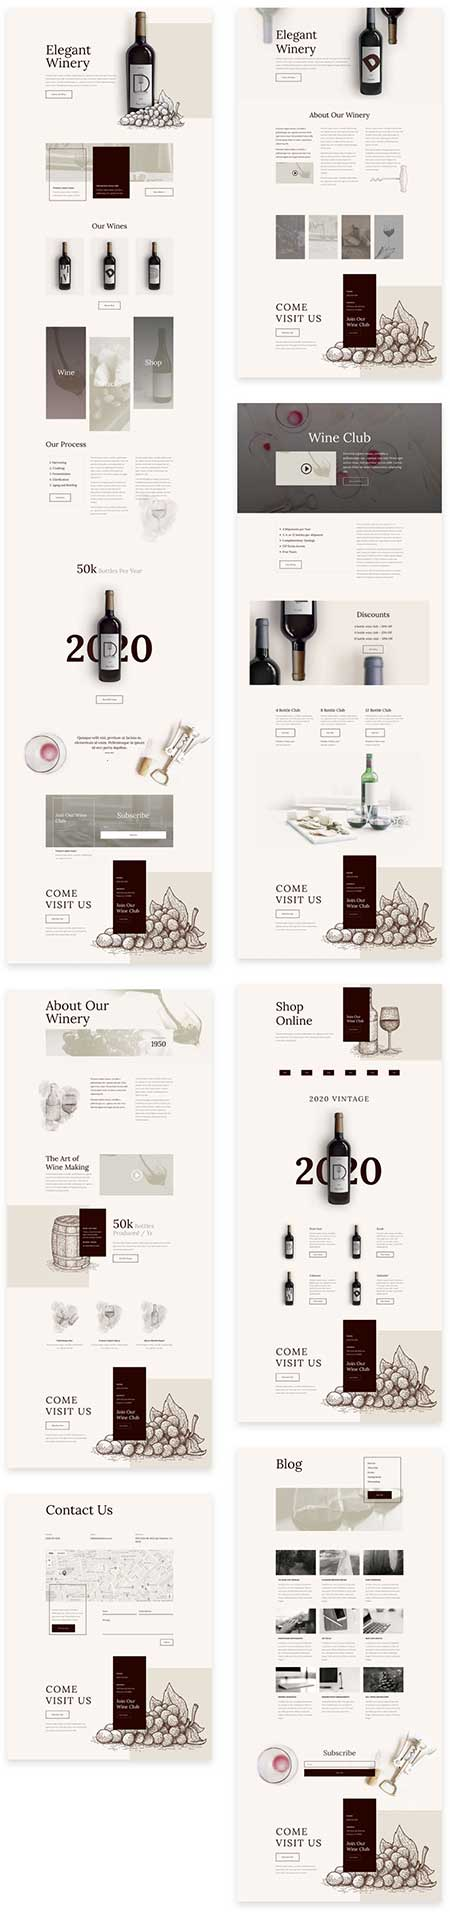 website template for winery